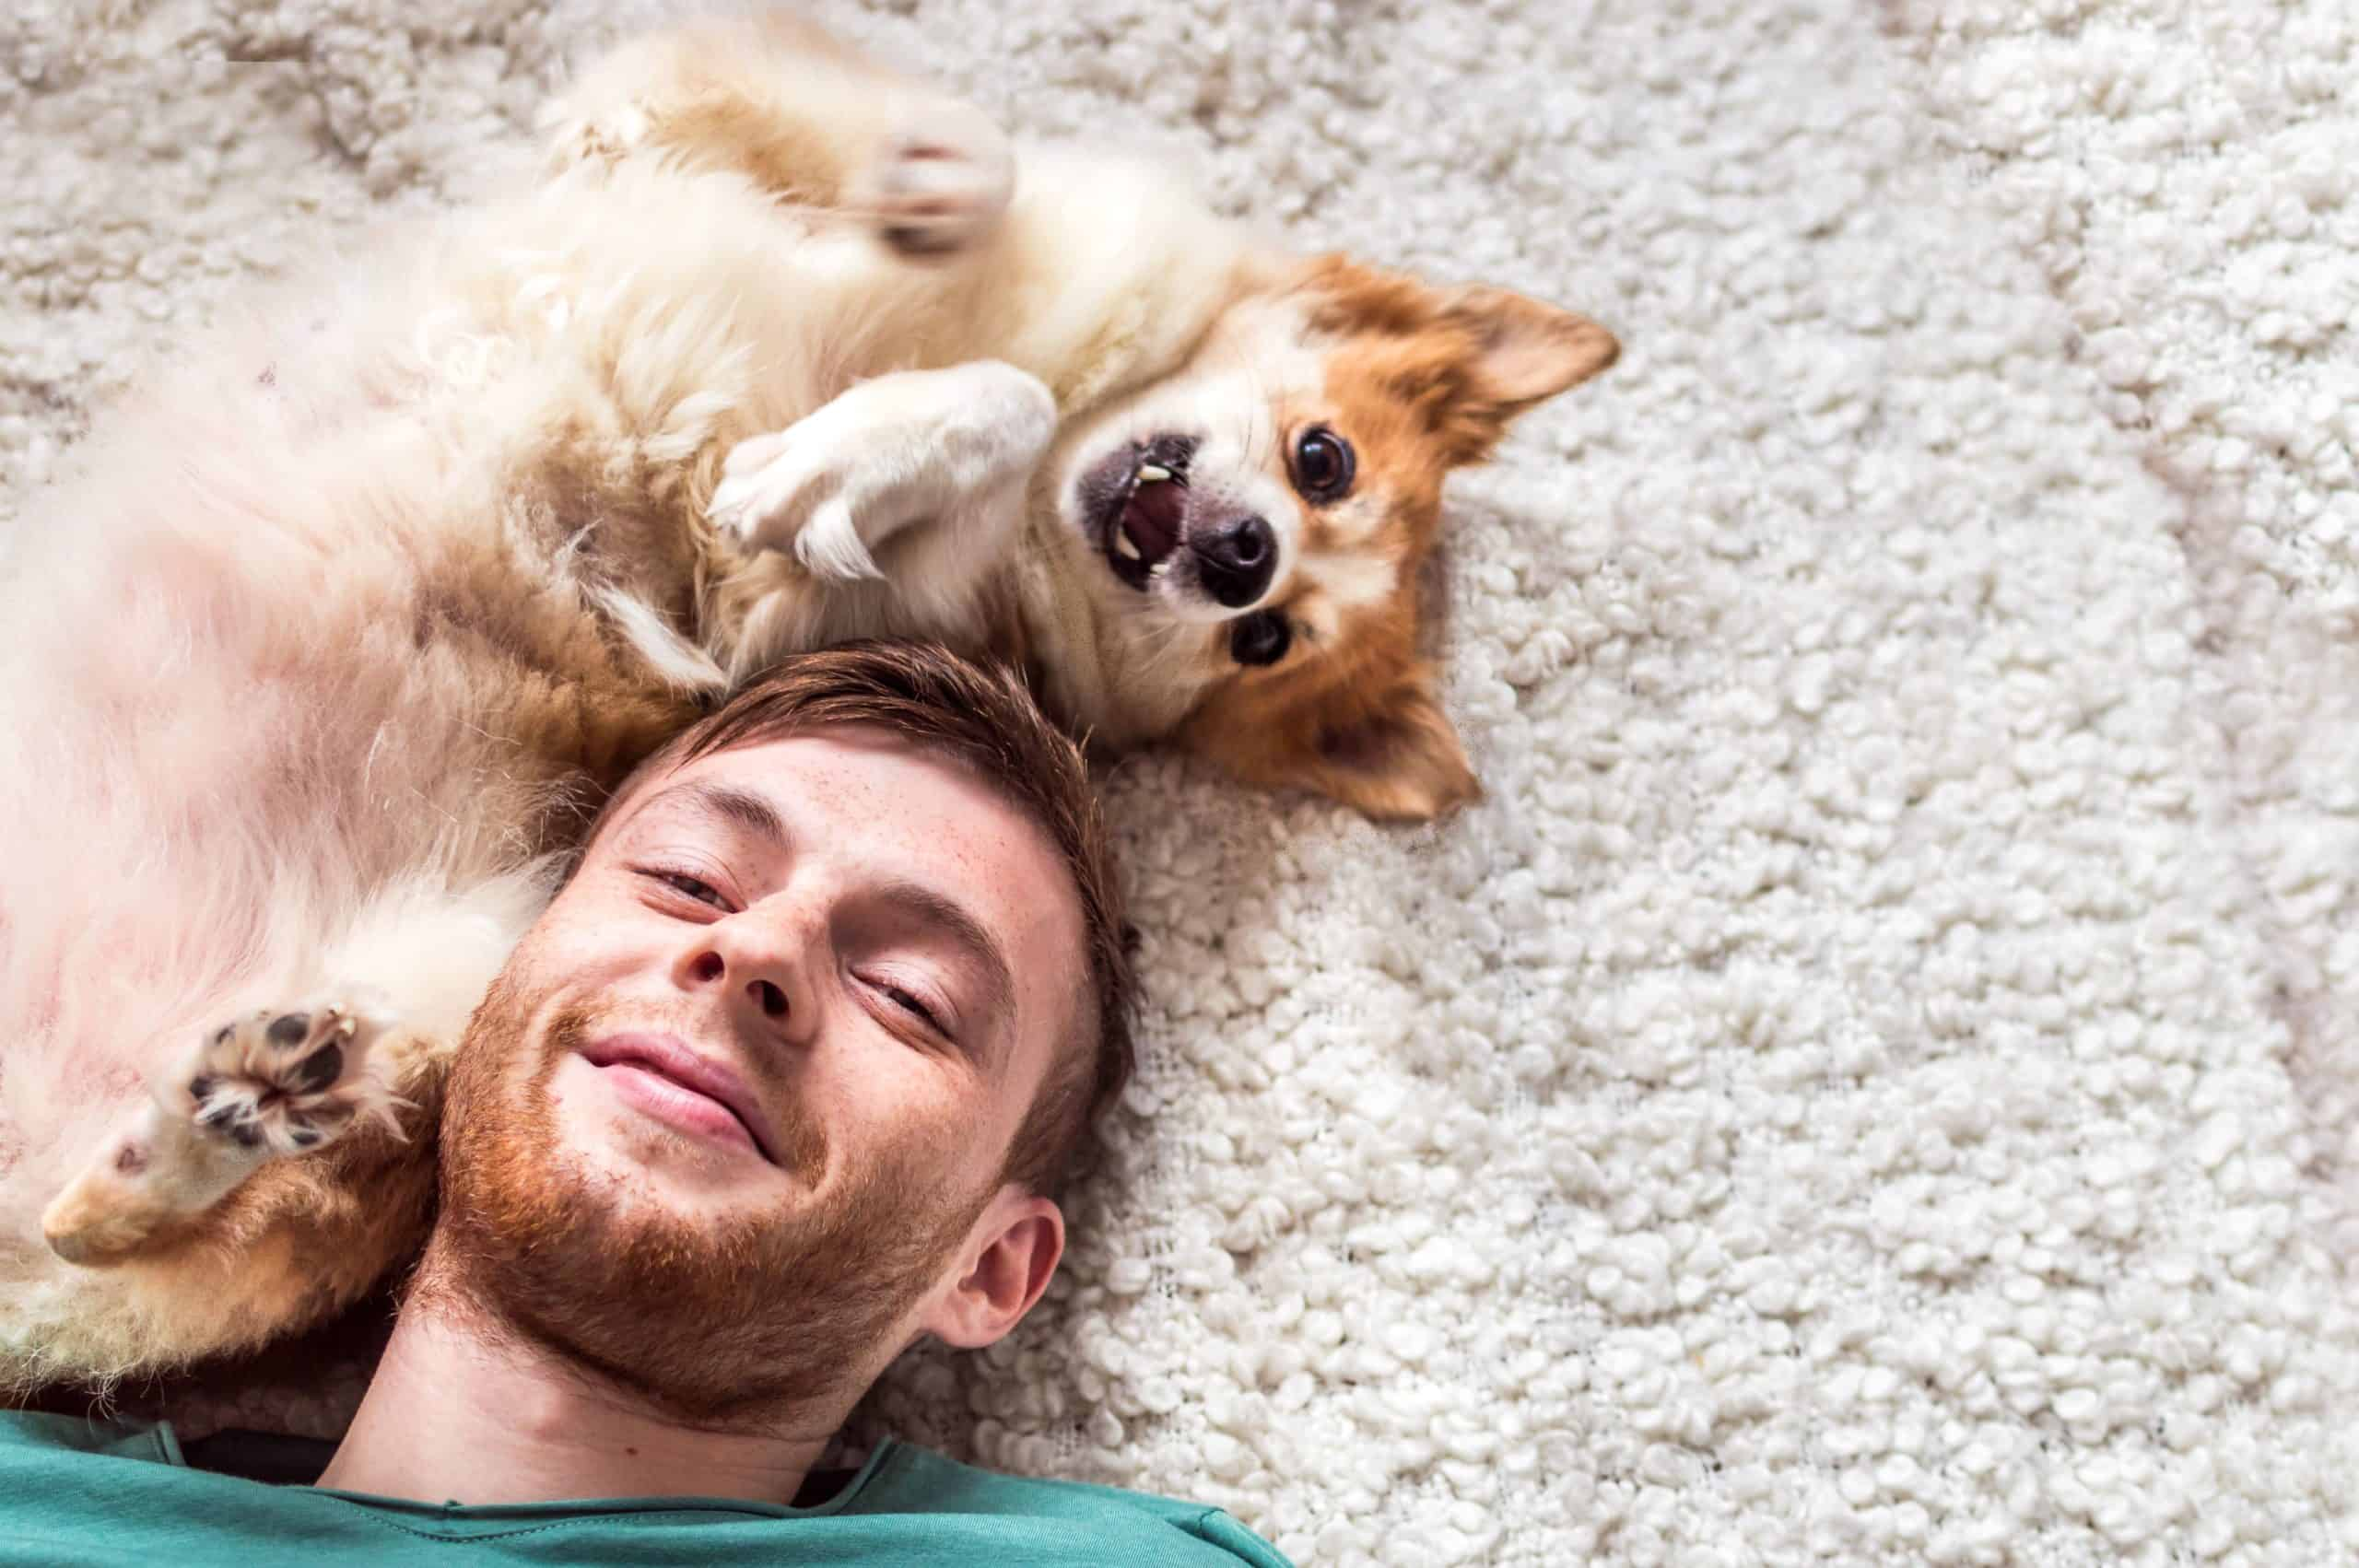 Man cuddles with puppy while lying on the floor. As a first-time dog parent, it's your responsibility to look out for your dog's nutrition, health, and entertainment.